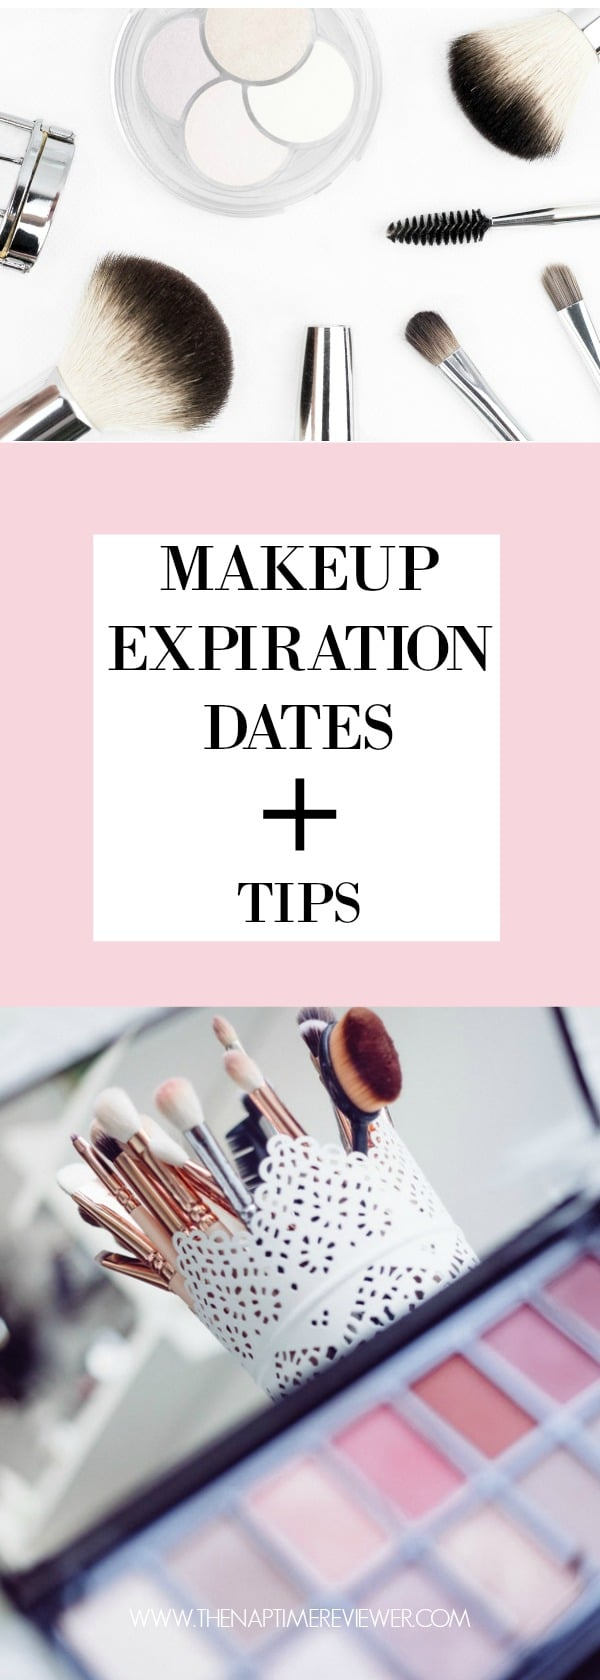 Makeup Expiration Dates and Tips